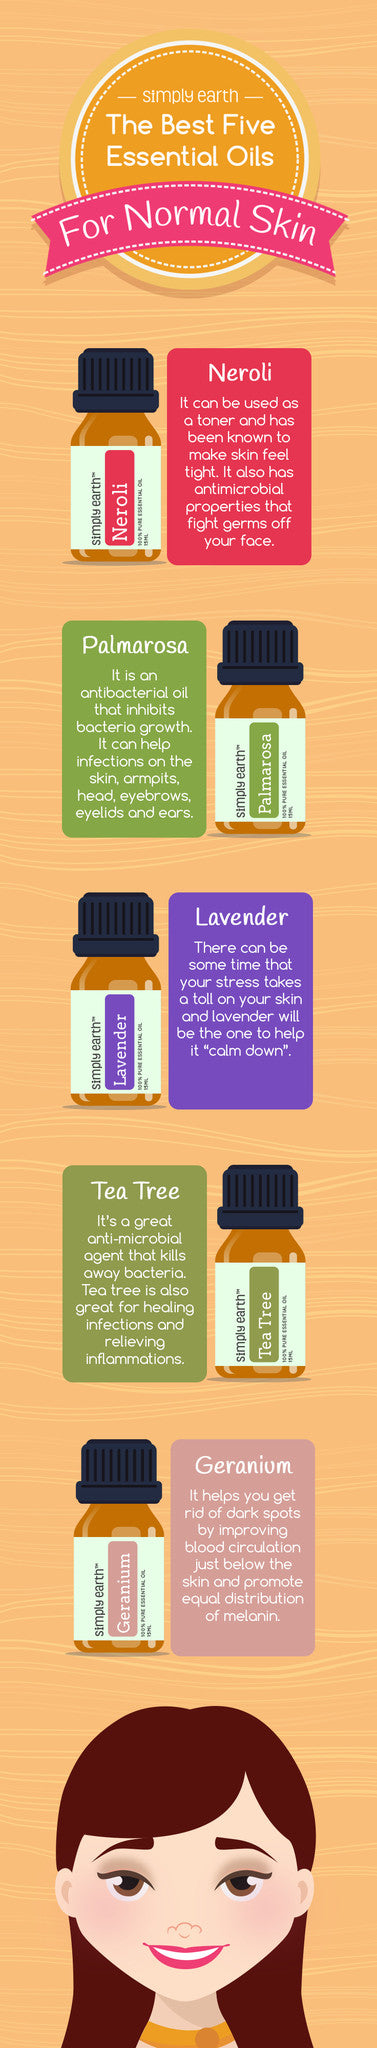 best essential oils for normal skin infographic